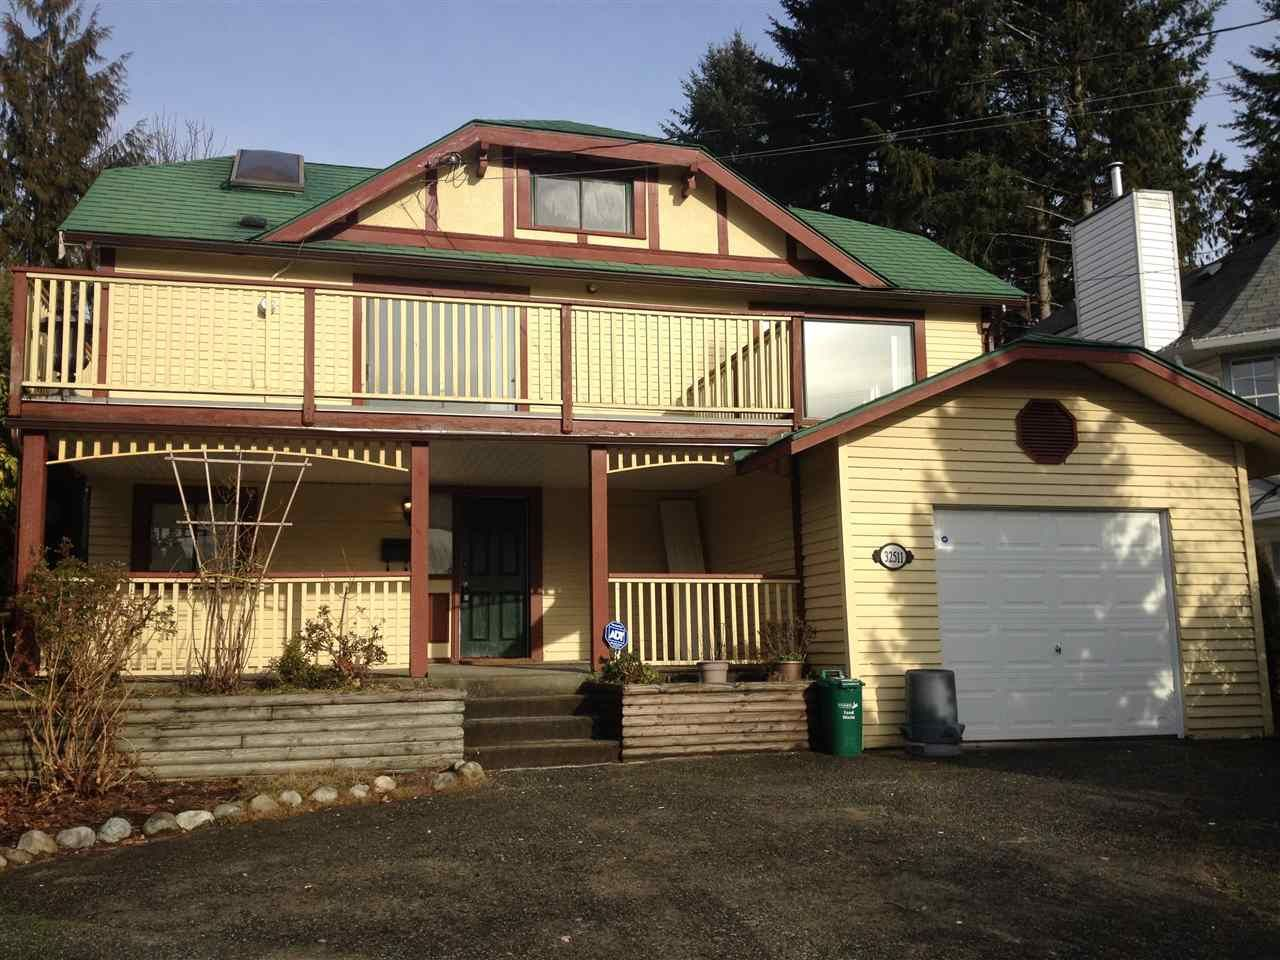 Main Photo: 32511 MCRAE AVENUE in Mission: Mission BC House for sale : MLS®# R2026564